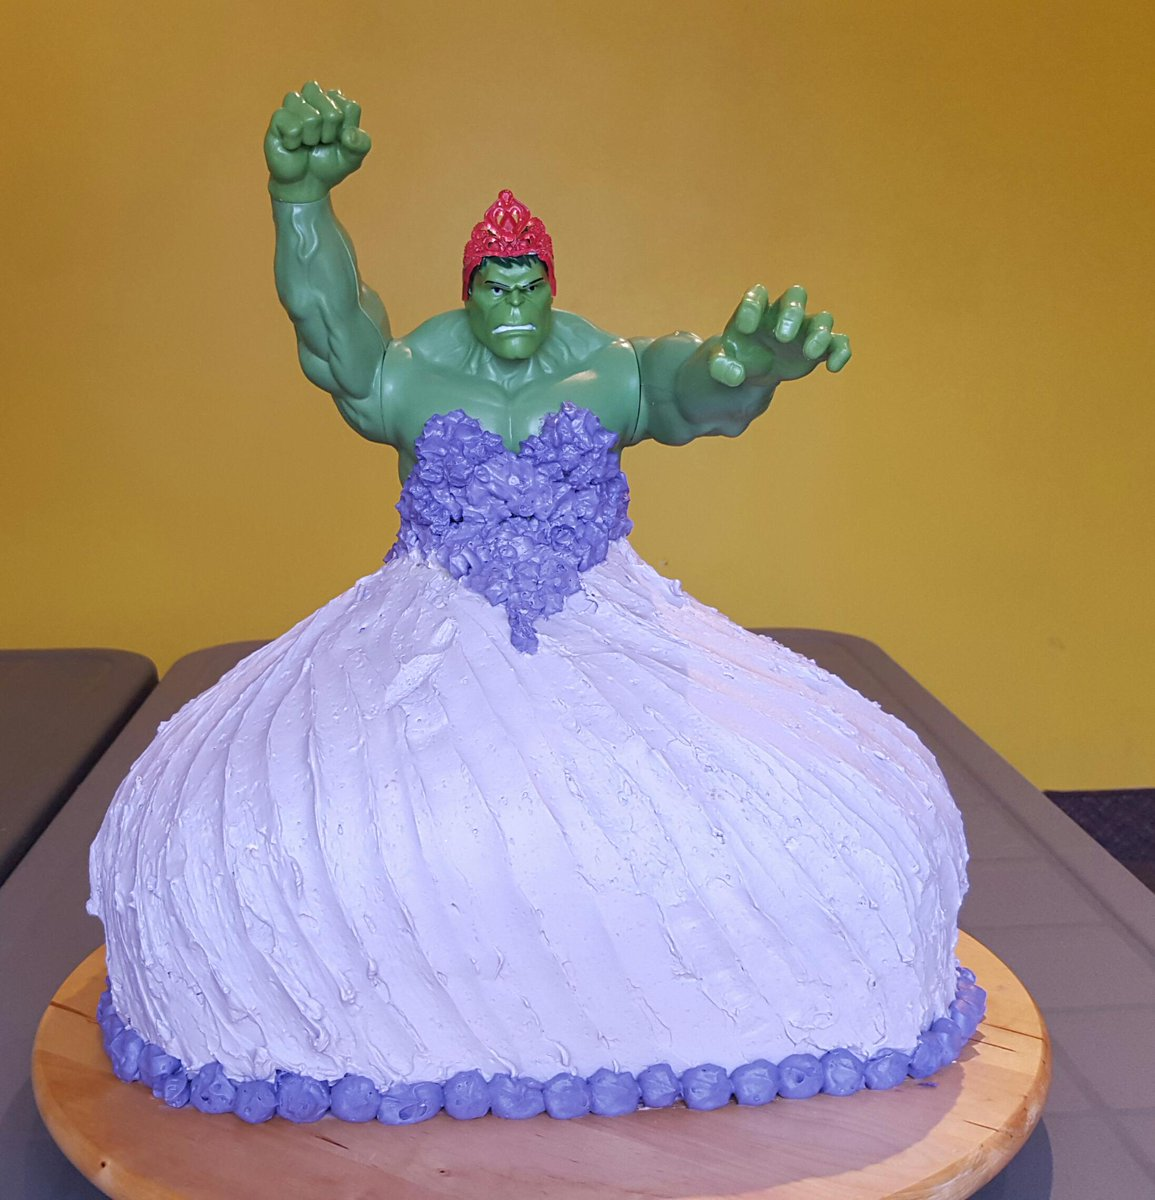 Twin 4 Year Old Girls Asked For A Hulk Princess Birthday